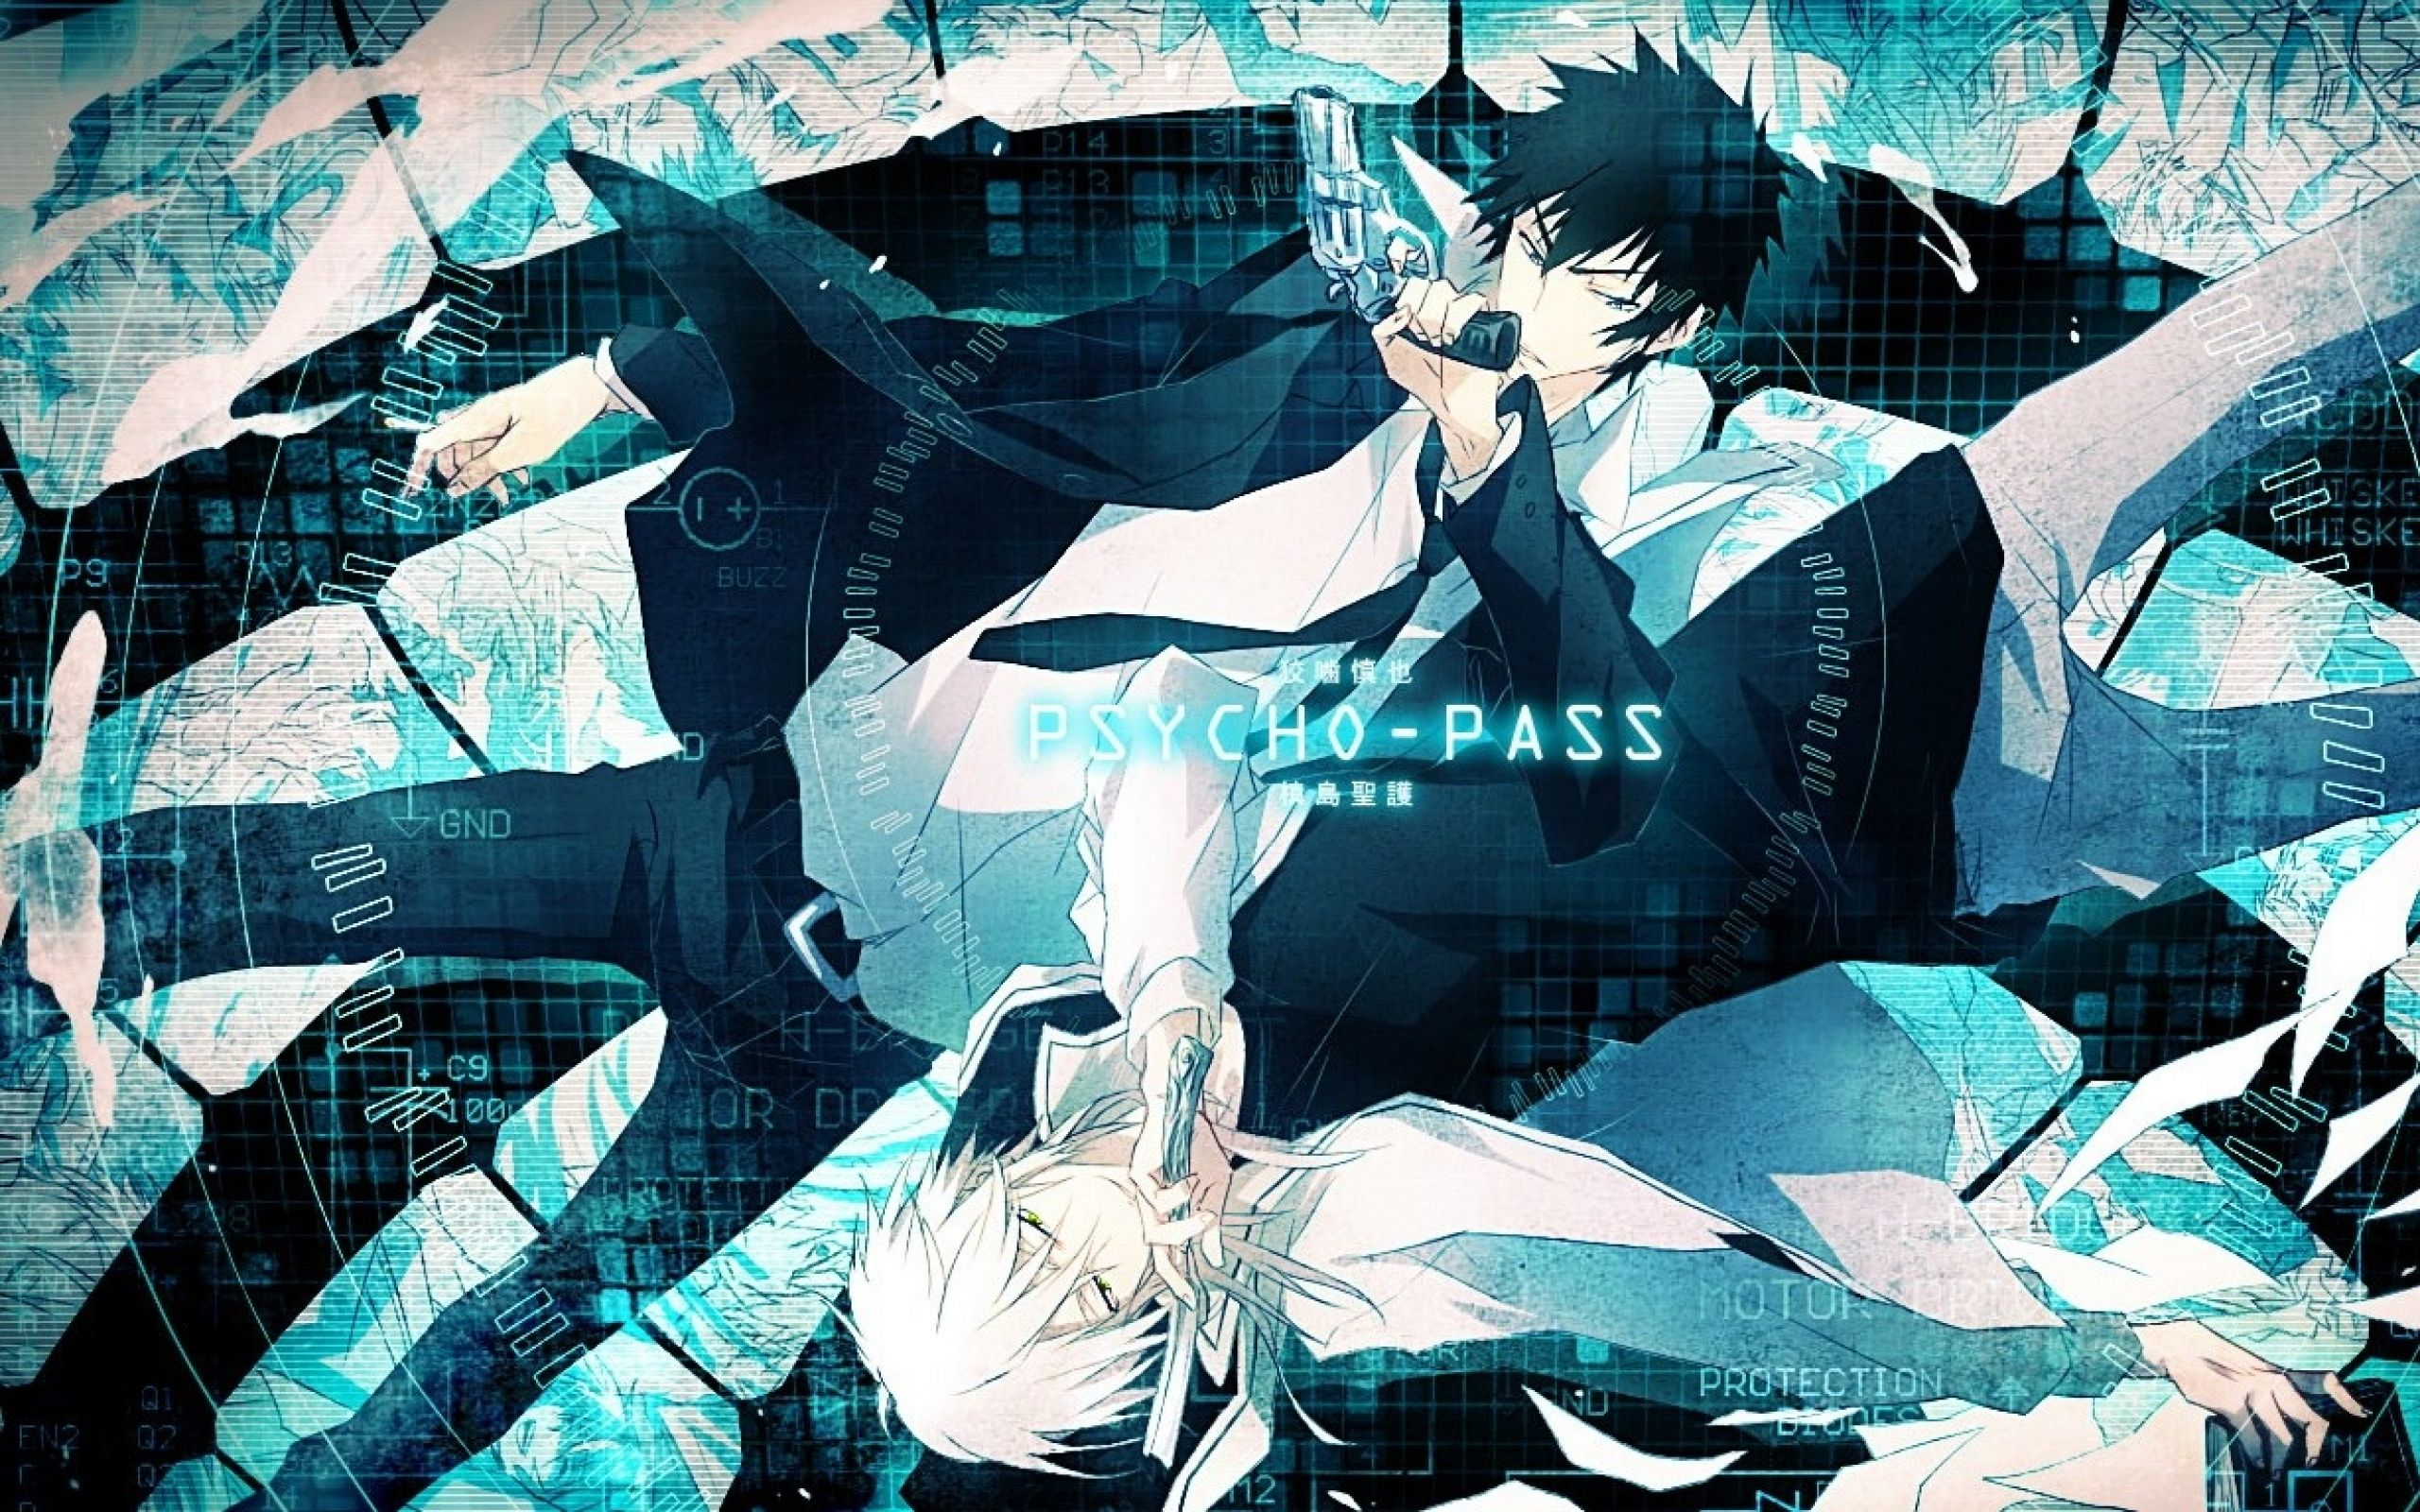 Shinya Kogami and Makishima Shogo Psycho Pass Anime